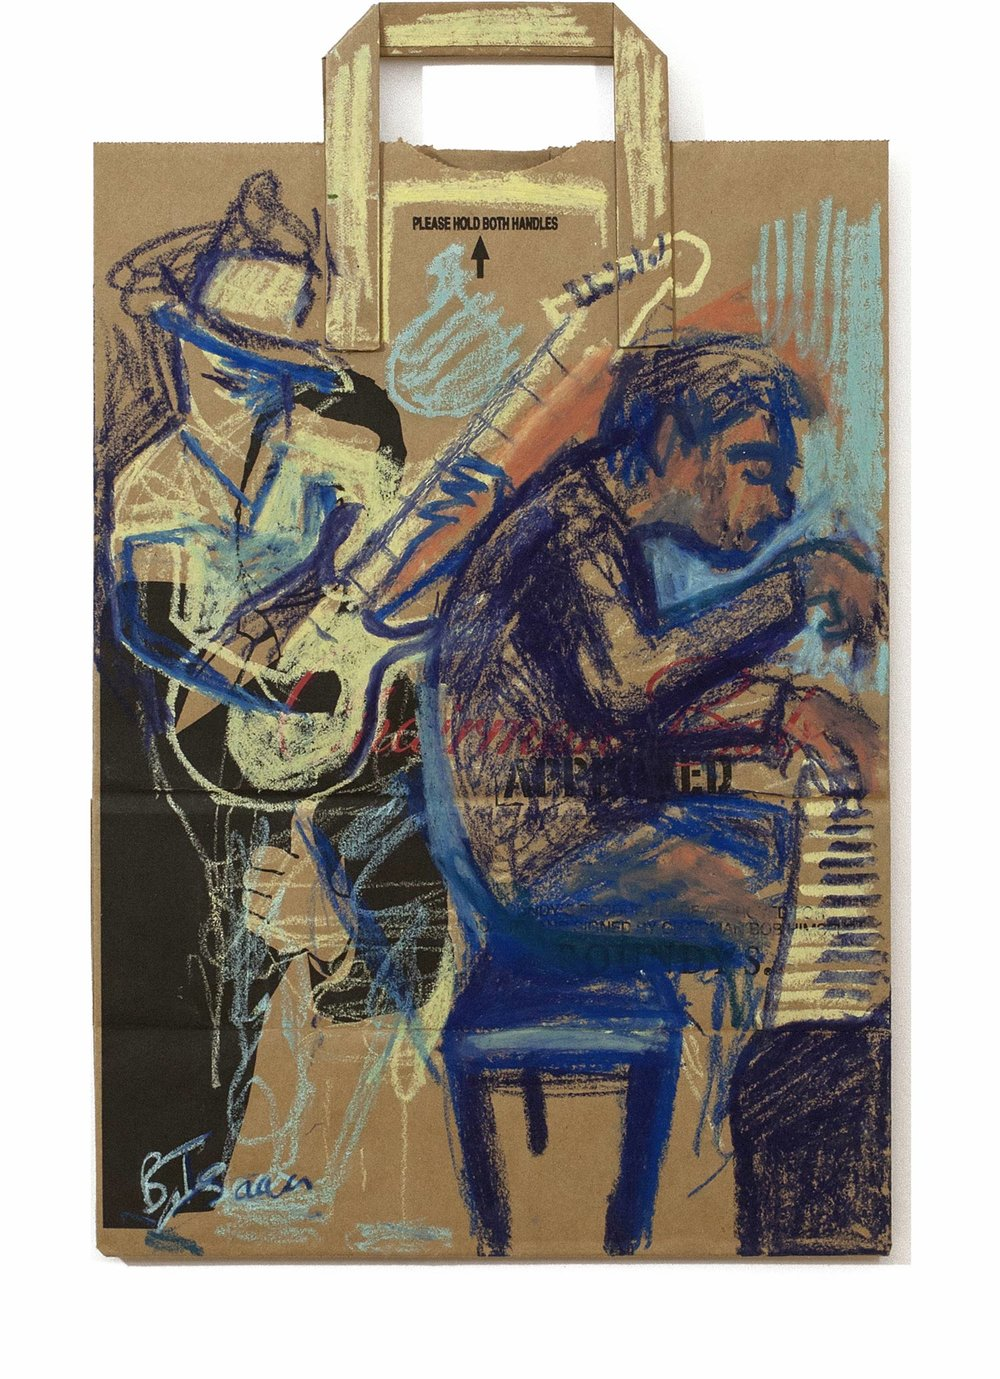 JAZZBAG JAM Oil Pastel on paper bag | 30 x 48 cm |2015 SOLD (UK)